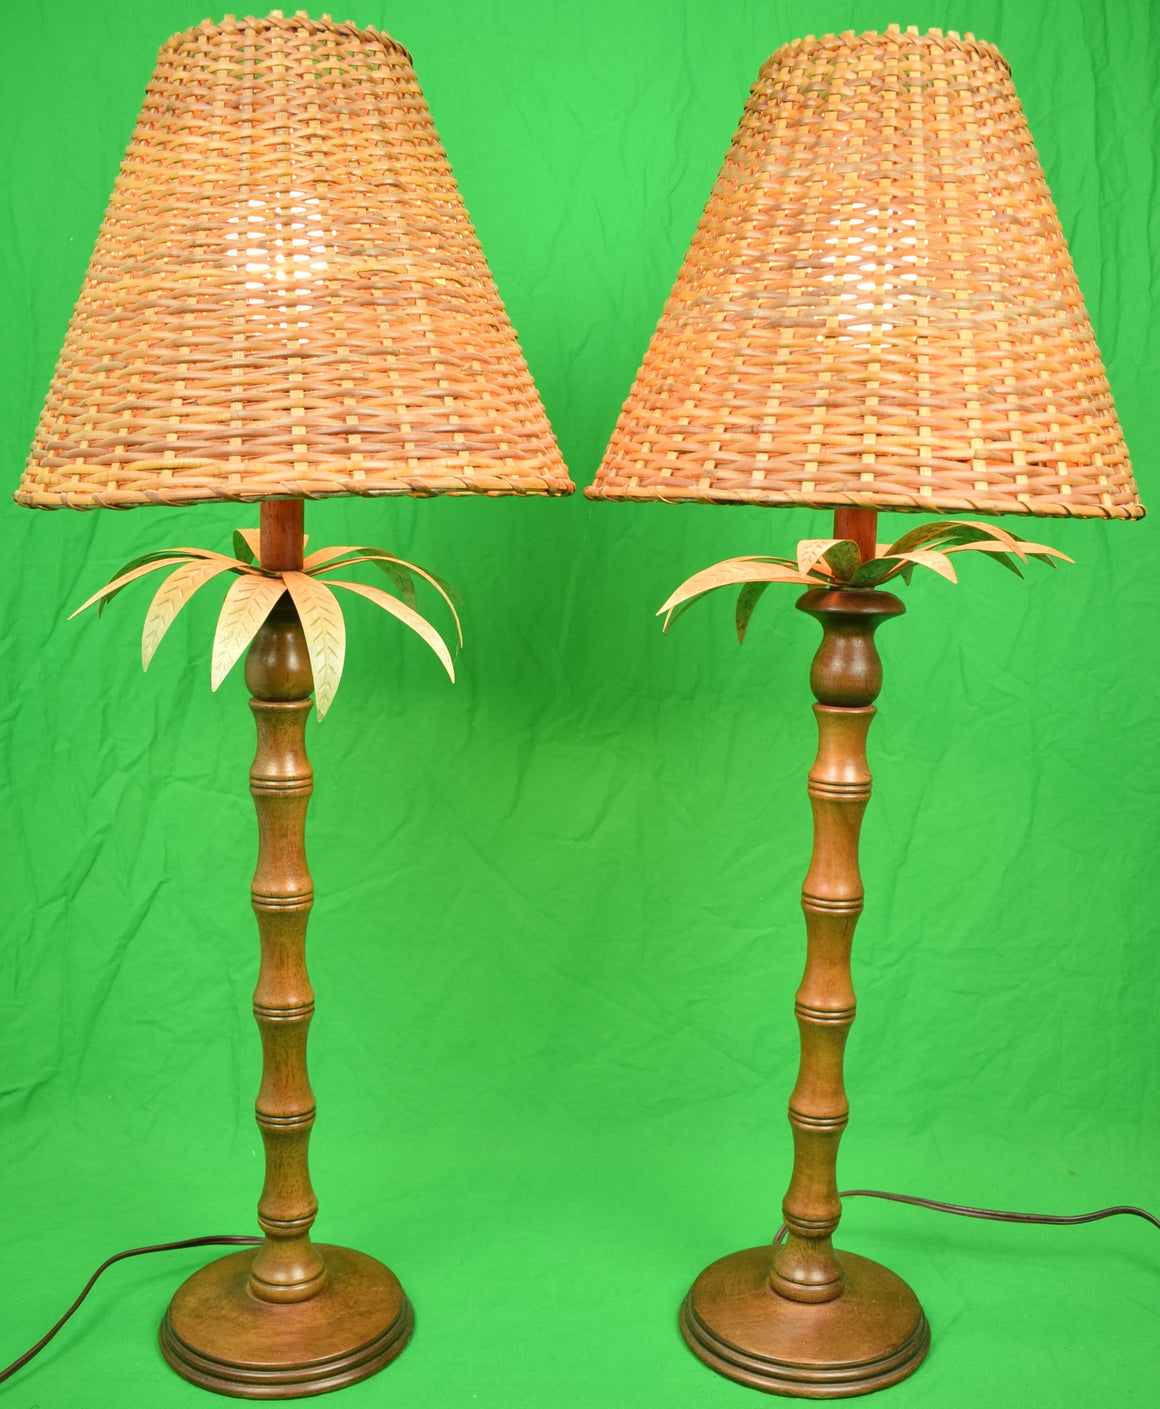 Pair of English Mahogany Table Lamps w/ Palm Fronds & Faux Bamboo Stems